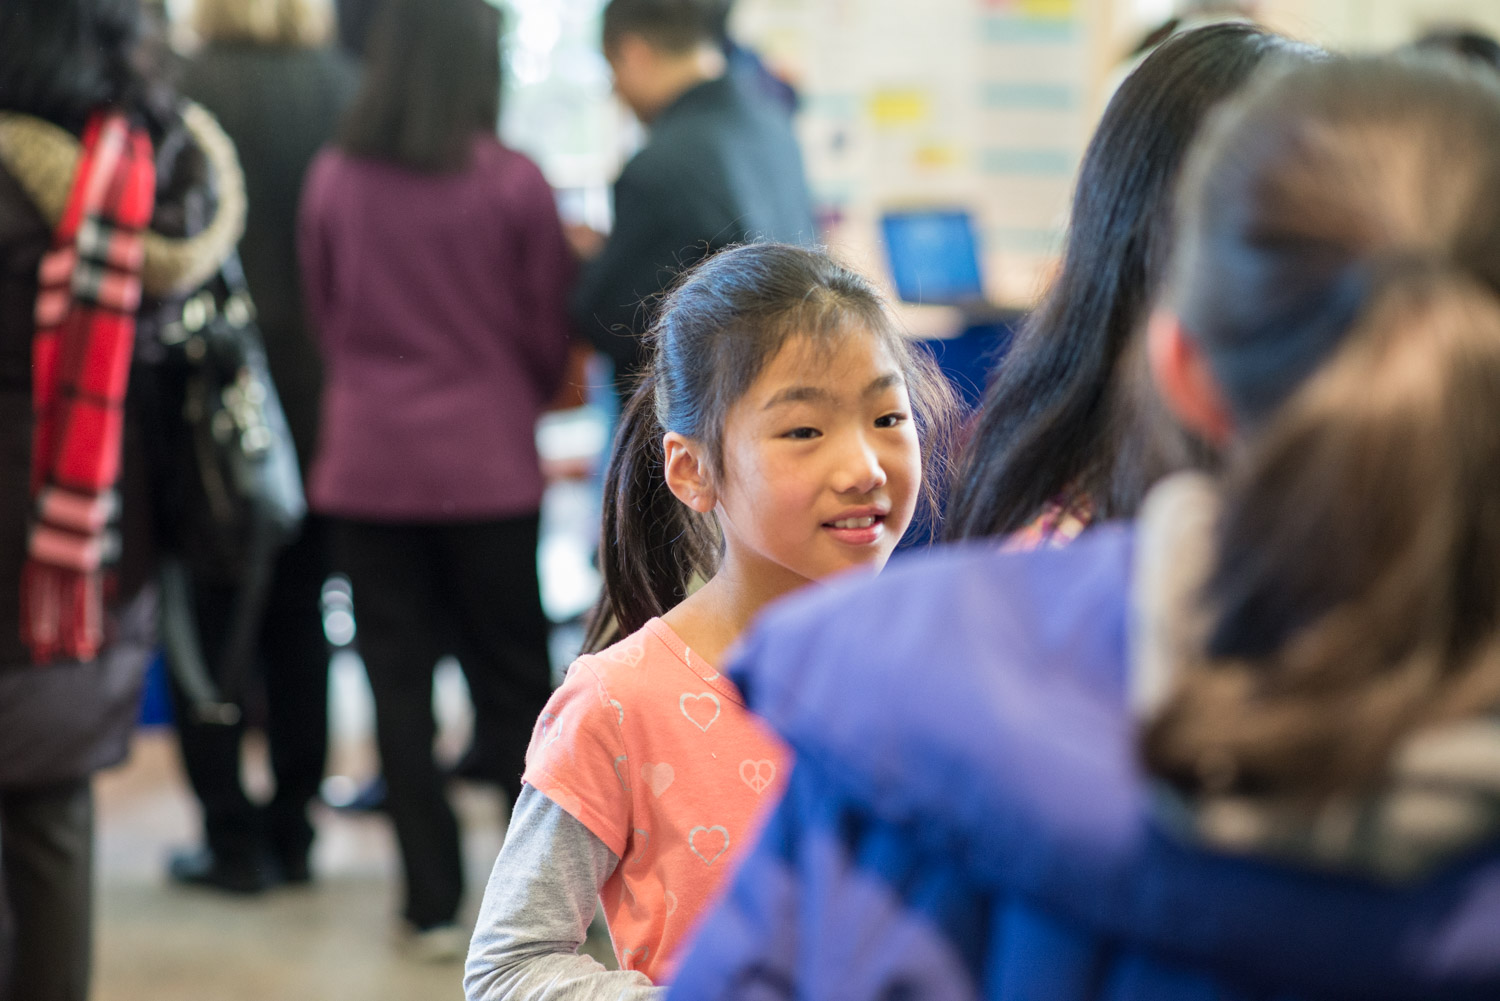 A young science enthusiast learns about a finalist's project.